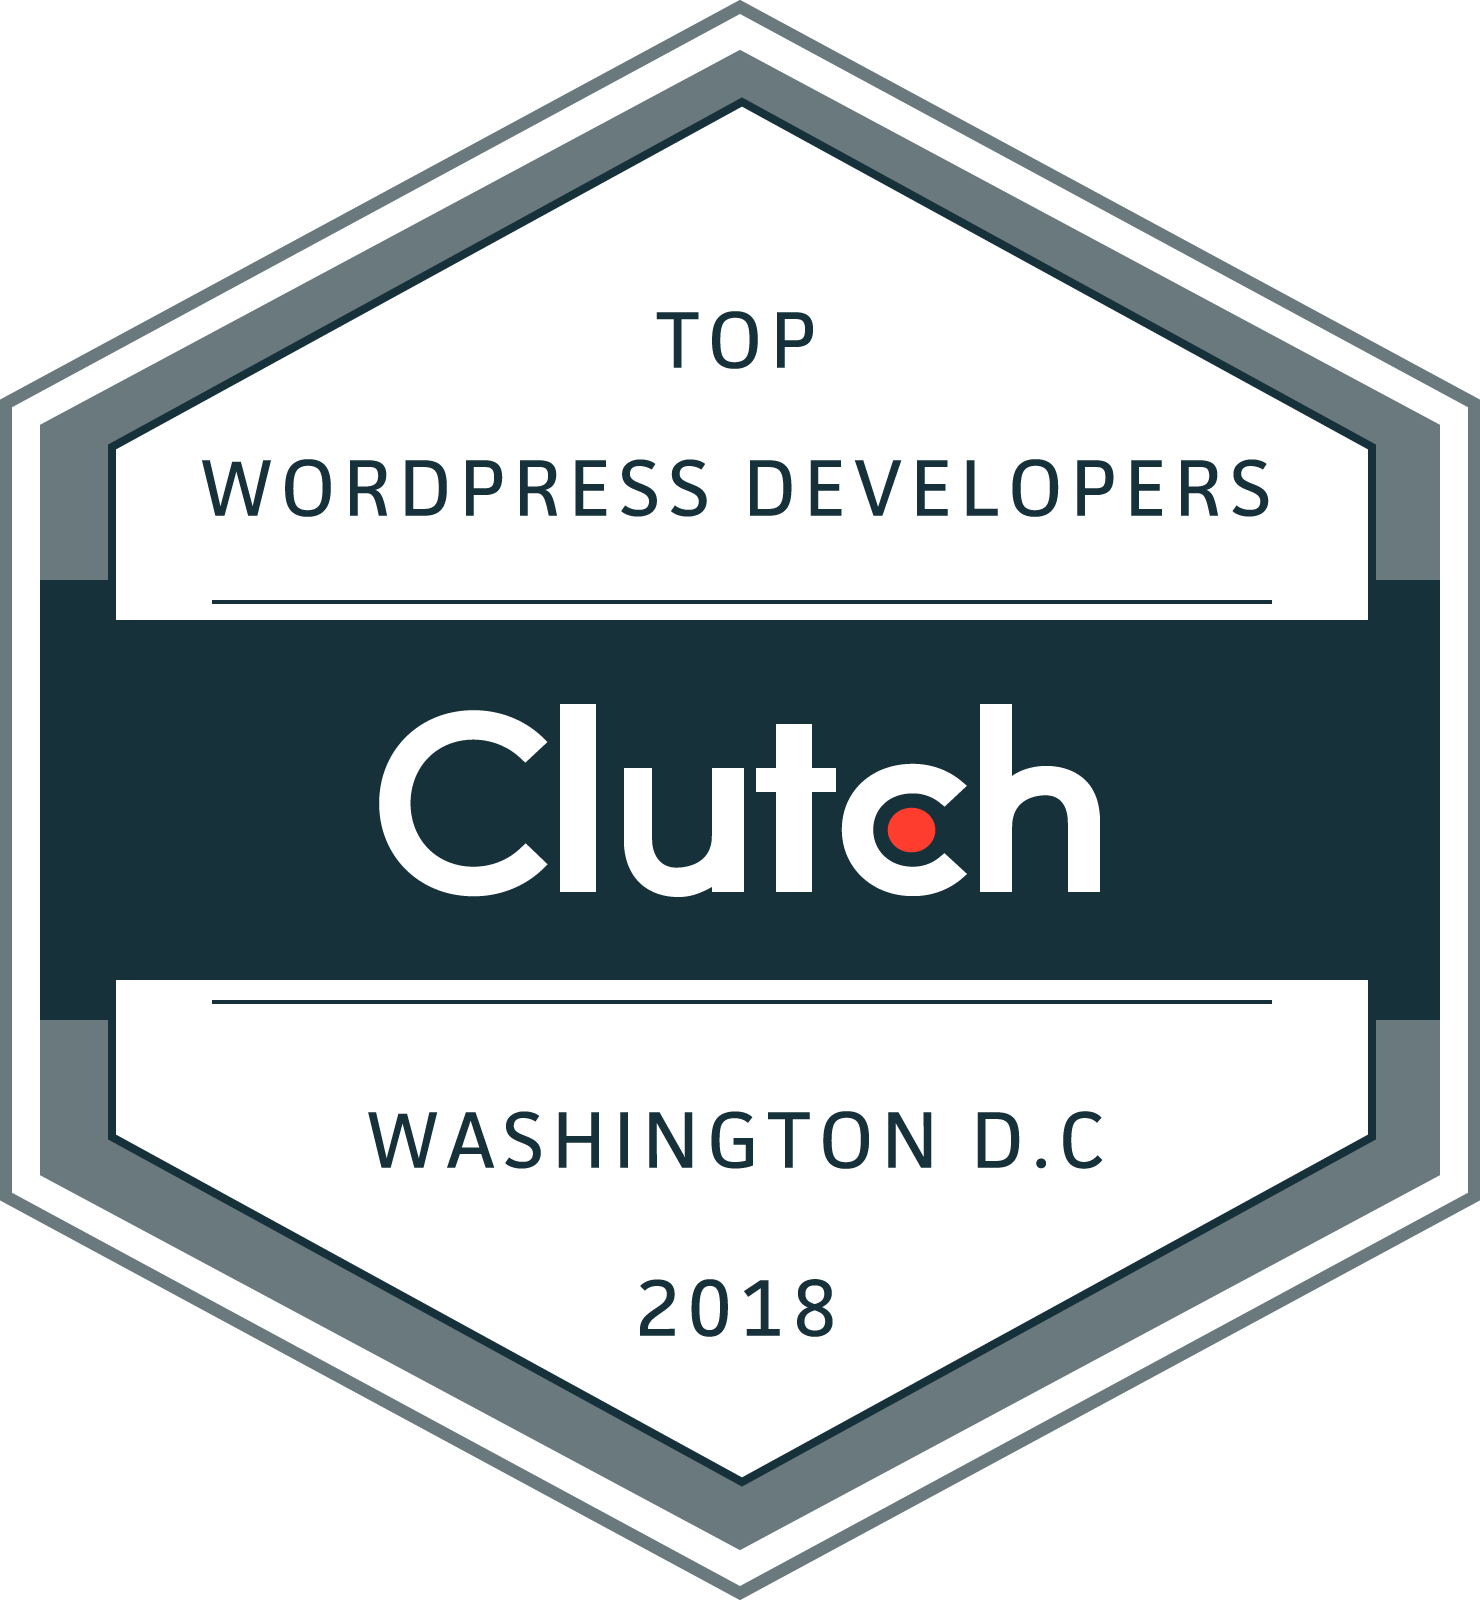 Clutch WordPress Developers 2018